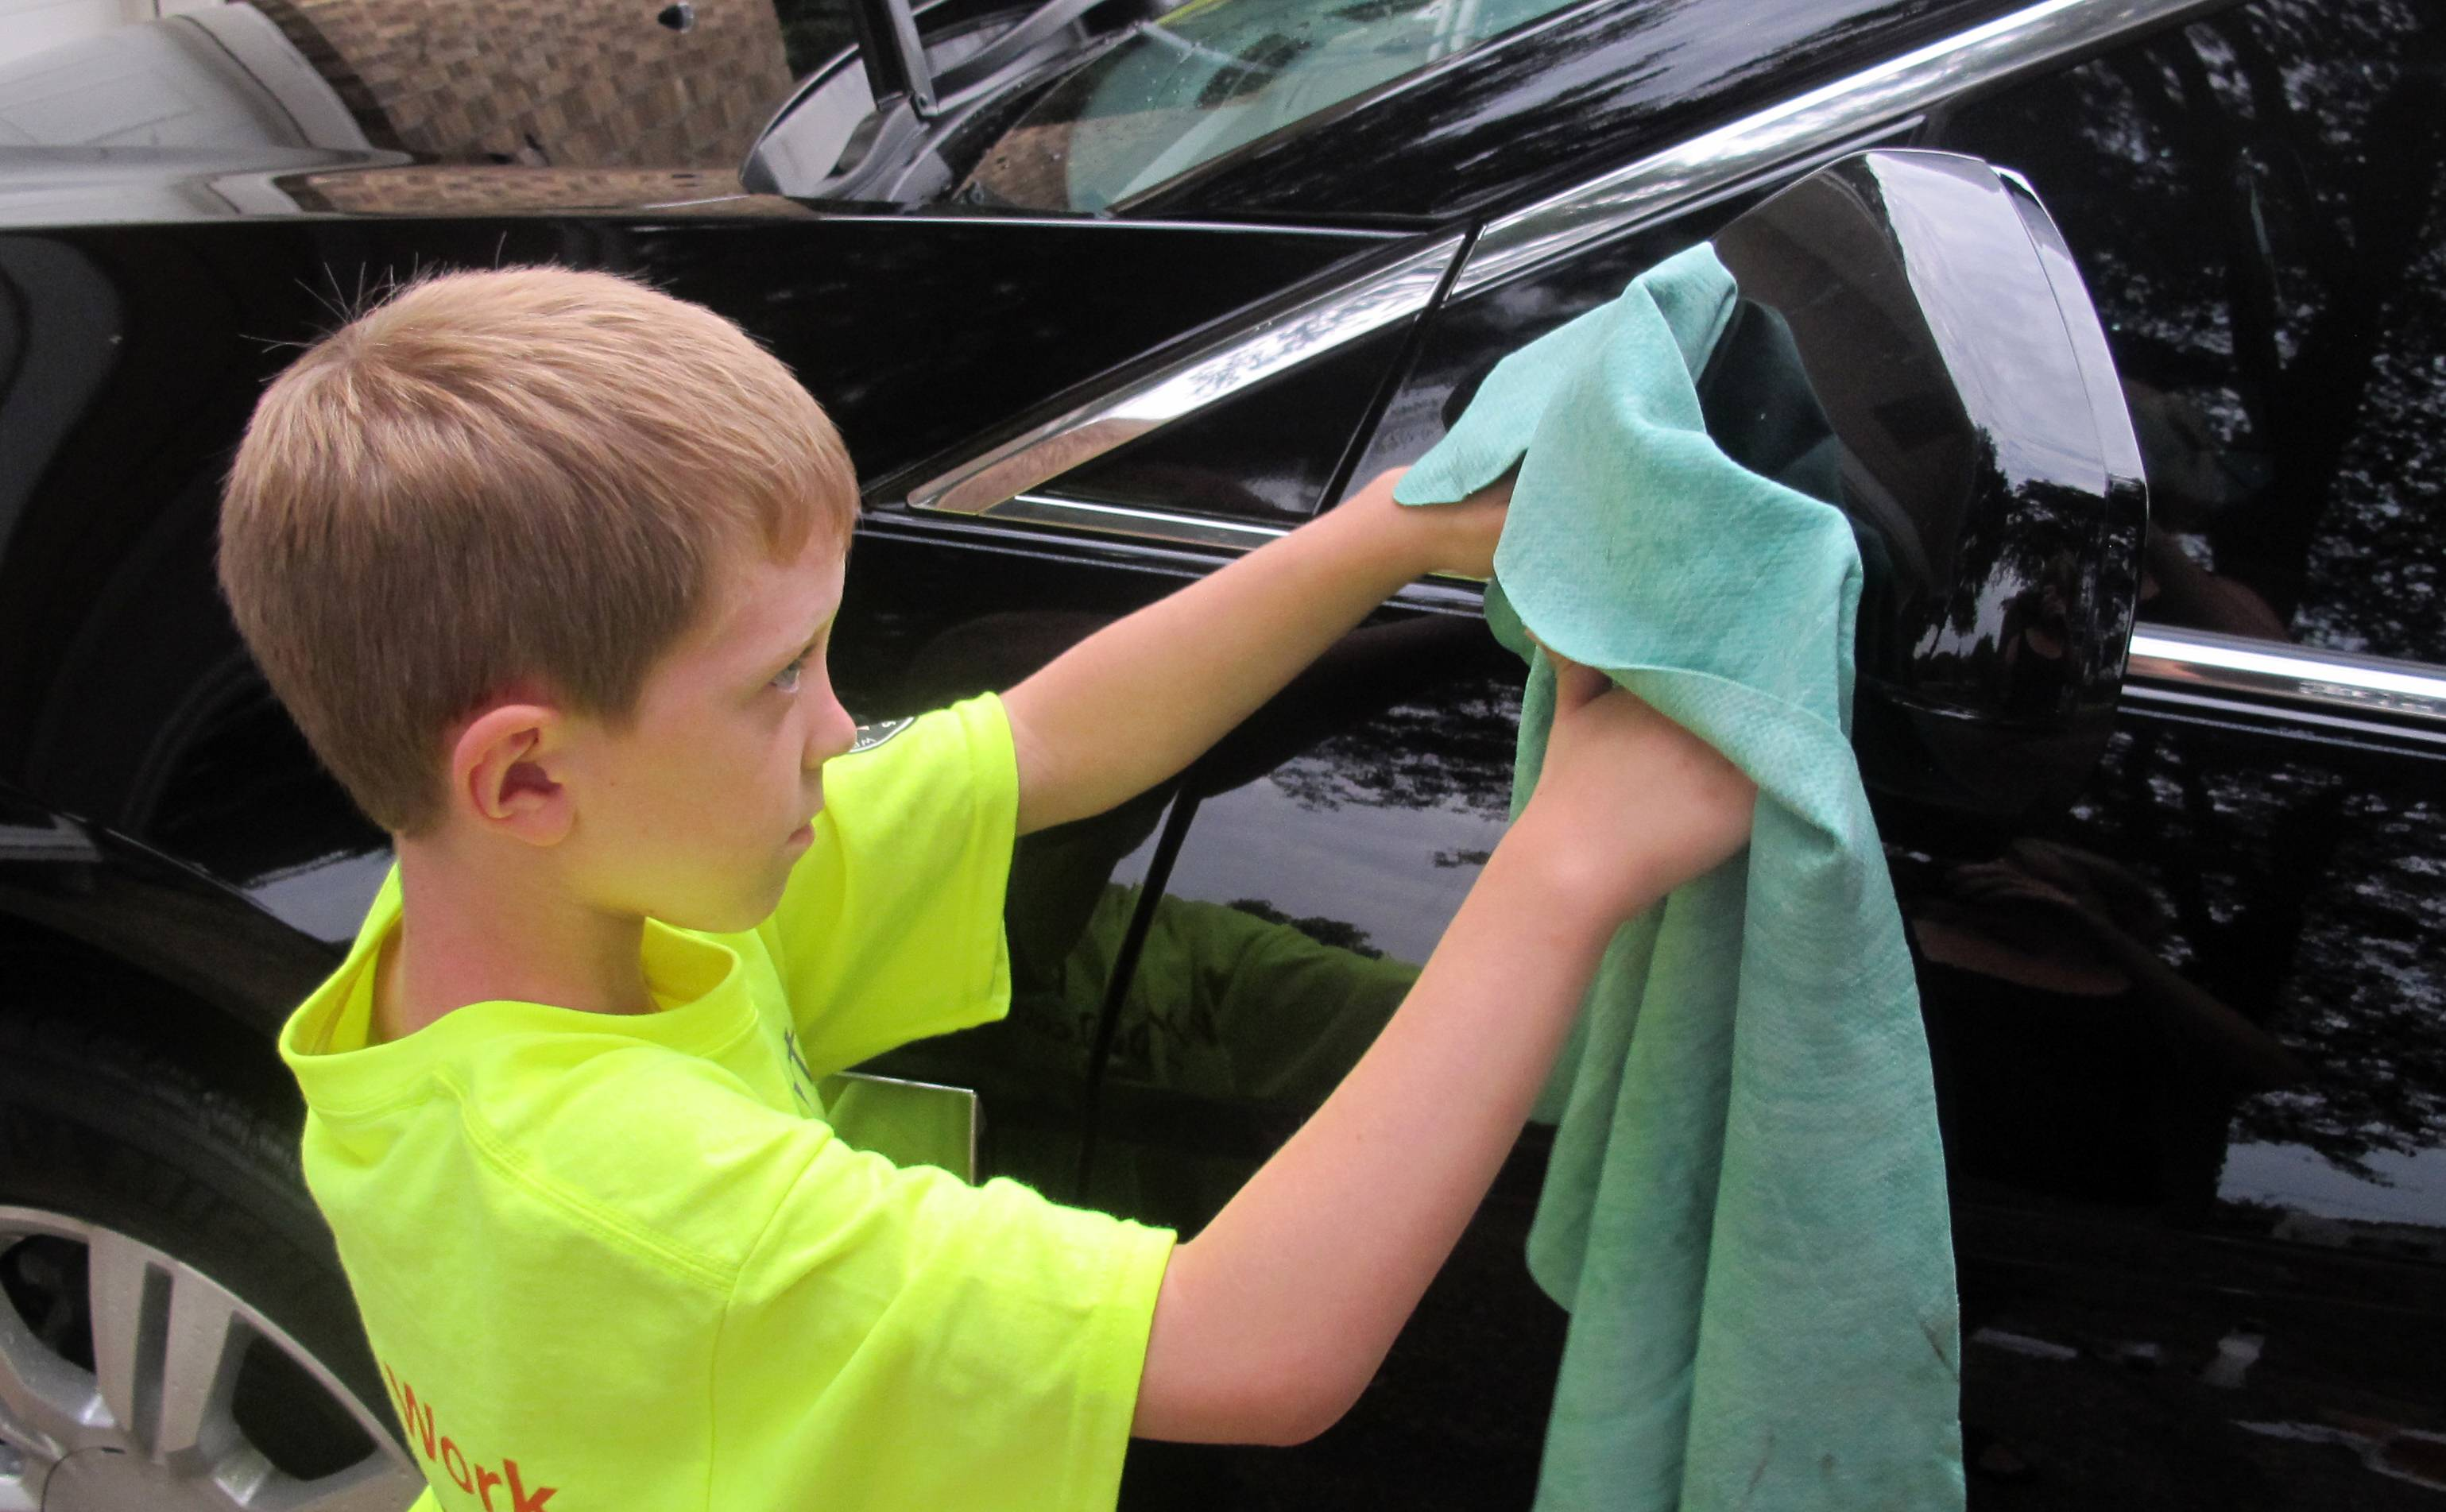 Sterling Murset washes a car at the home of Todd Blanchieri in Pensacola, Fla. The Murset family toured the country this summer doing chores for families in need.